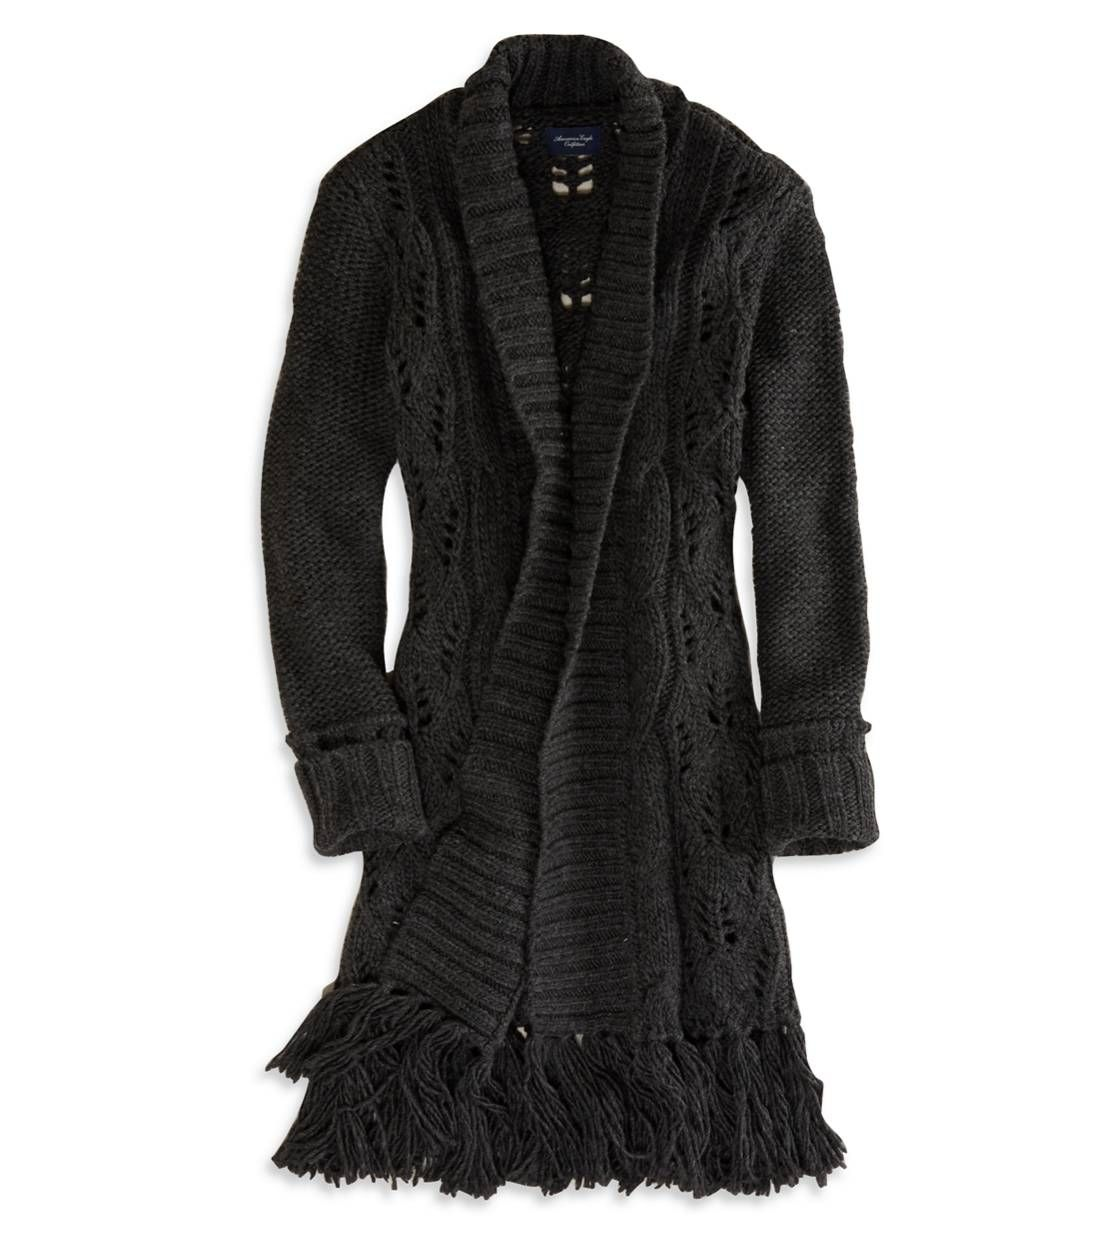 AE Open Fringe Sweater Coat omg have get this!!!!! | Fashion ...